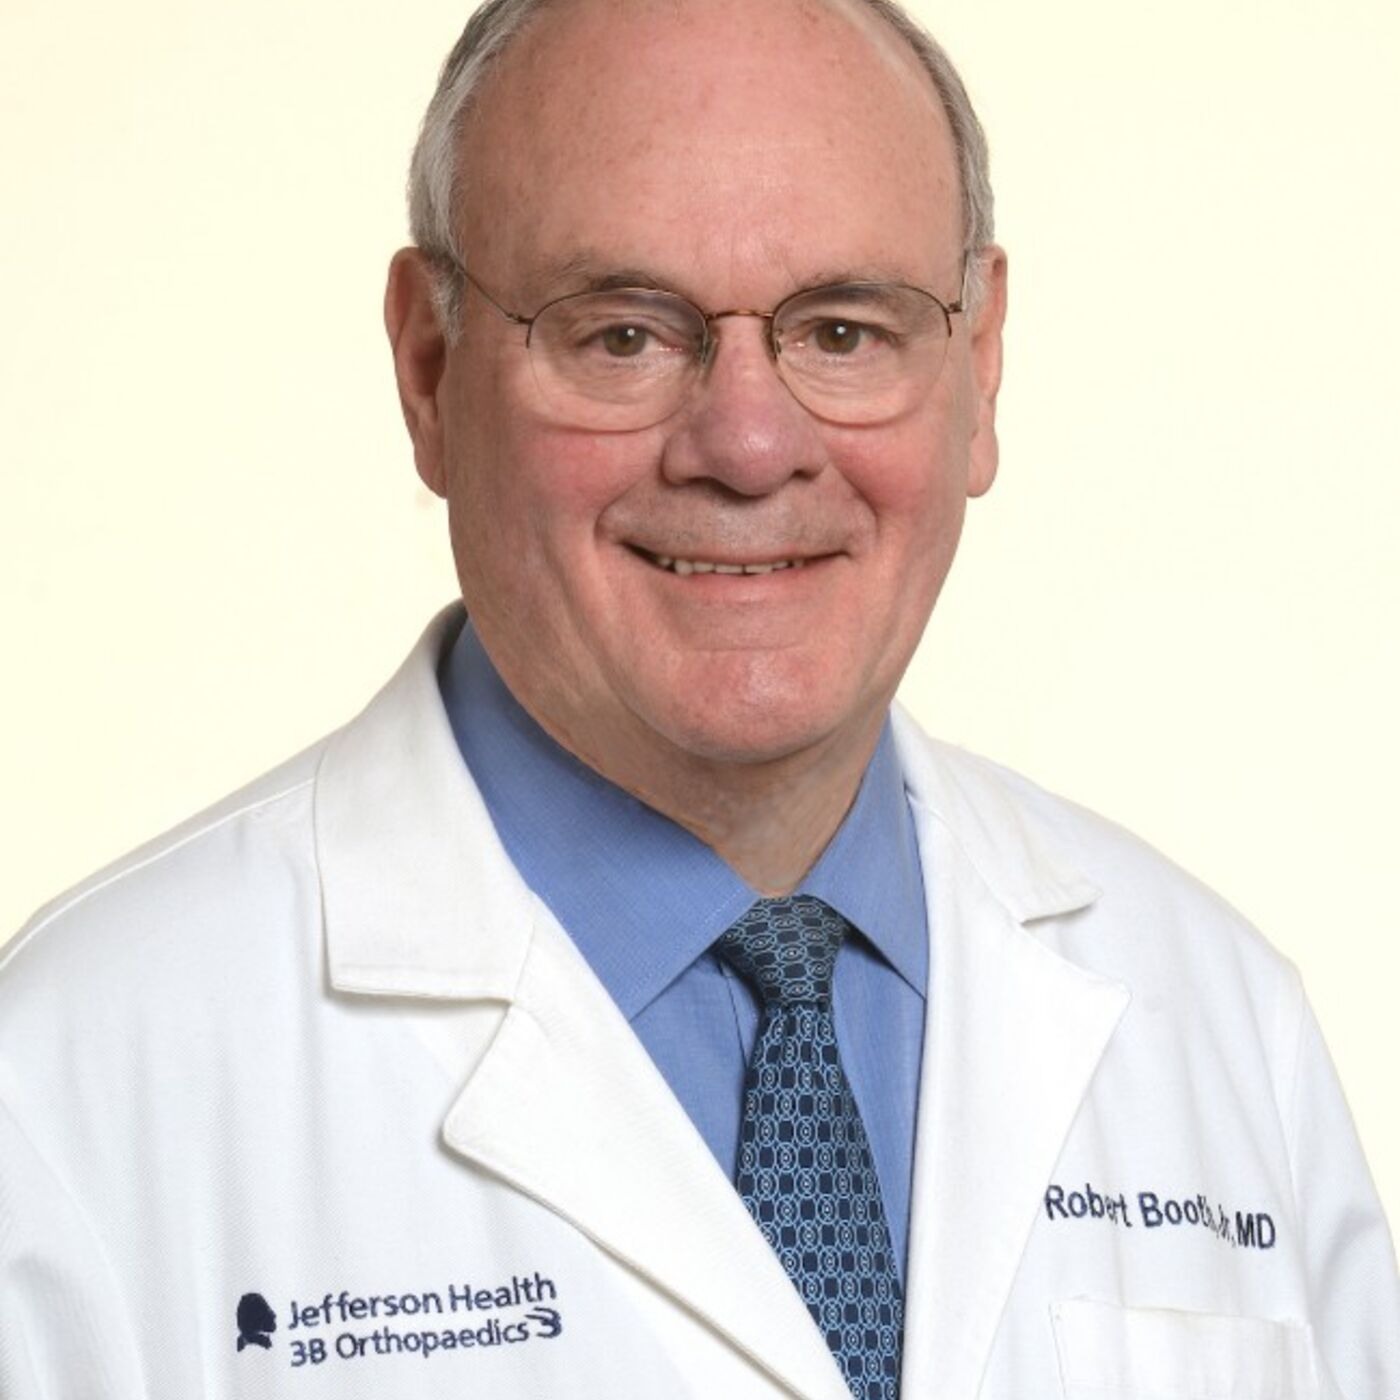 Medical Device Reps Podcast: Dr. Robert E. Booth-Part One